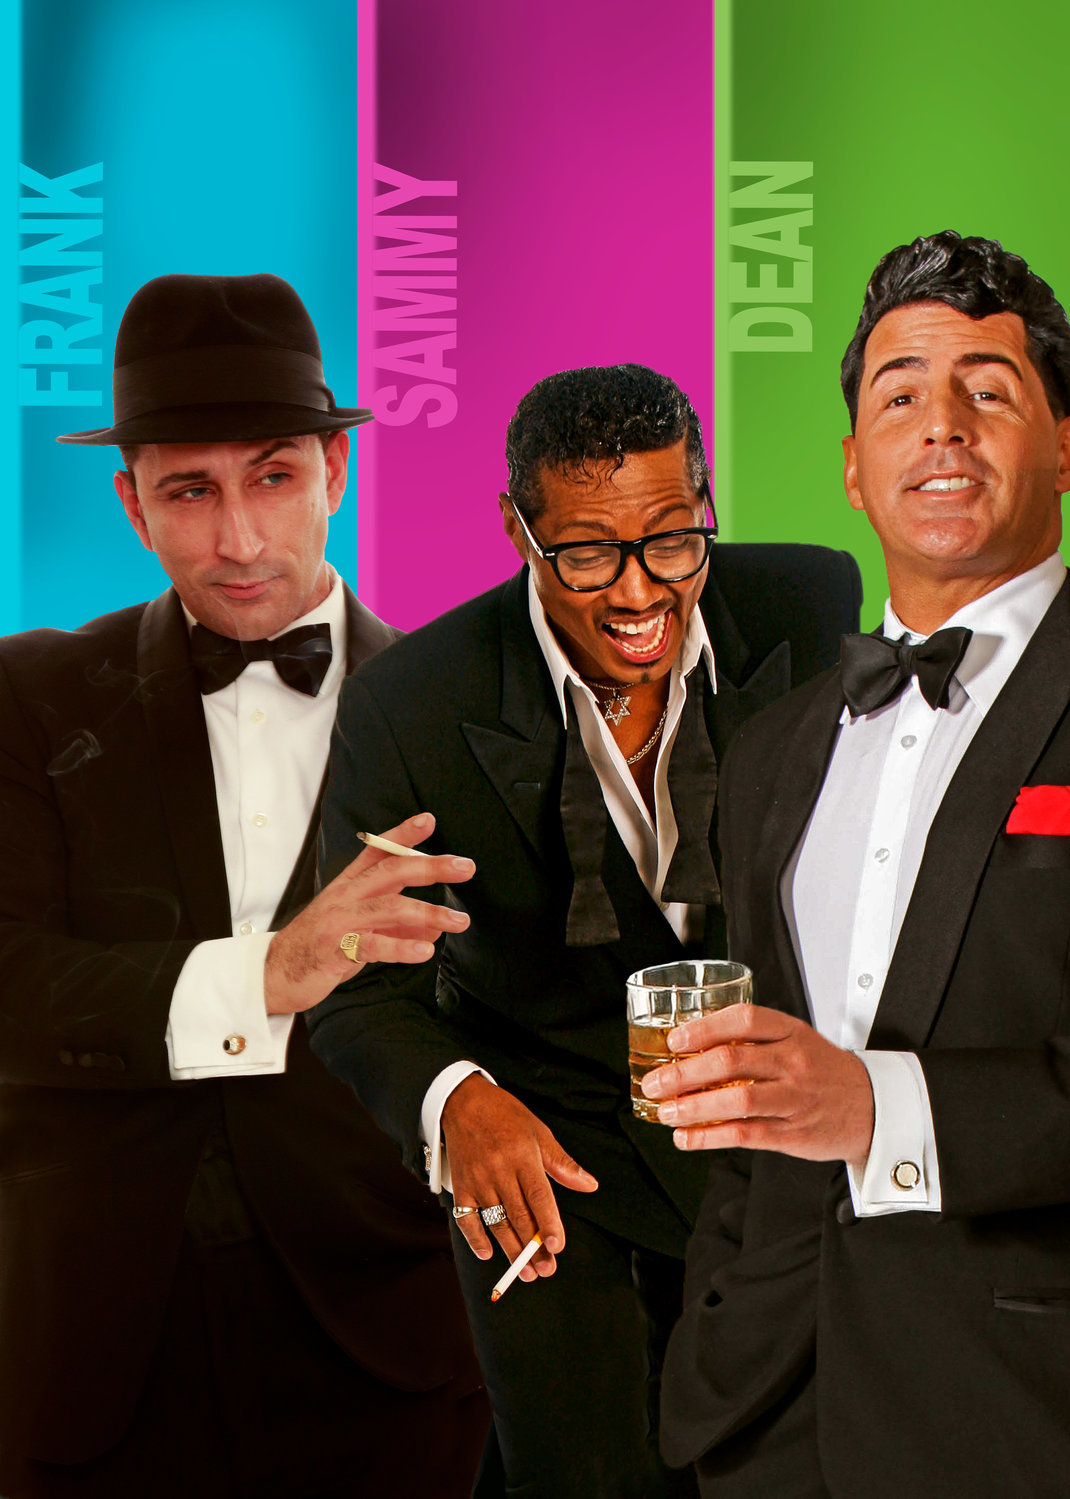 Chris Jason as Frank Sinatra, Kyle Diamond as Sammy Davis Jr. and Drew Anthony as Dean Martin were live-streamed at The Gateway Drive-In Theatre New Year's Eve.